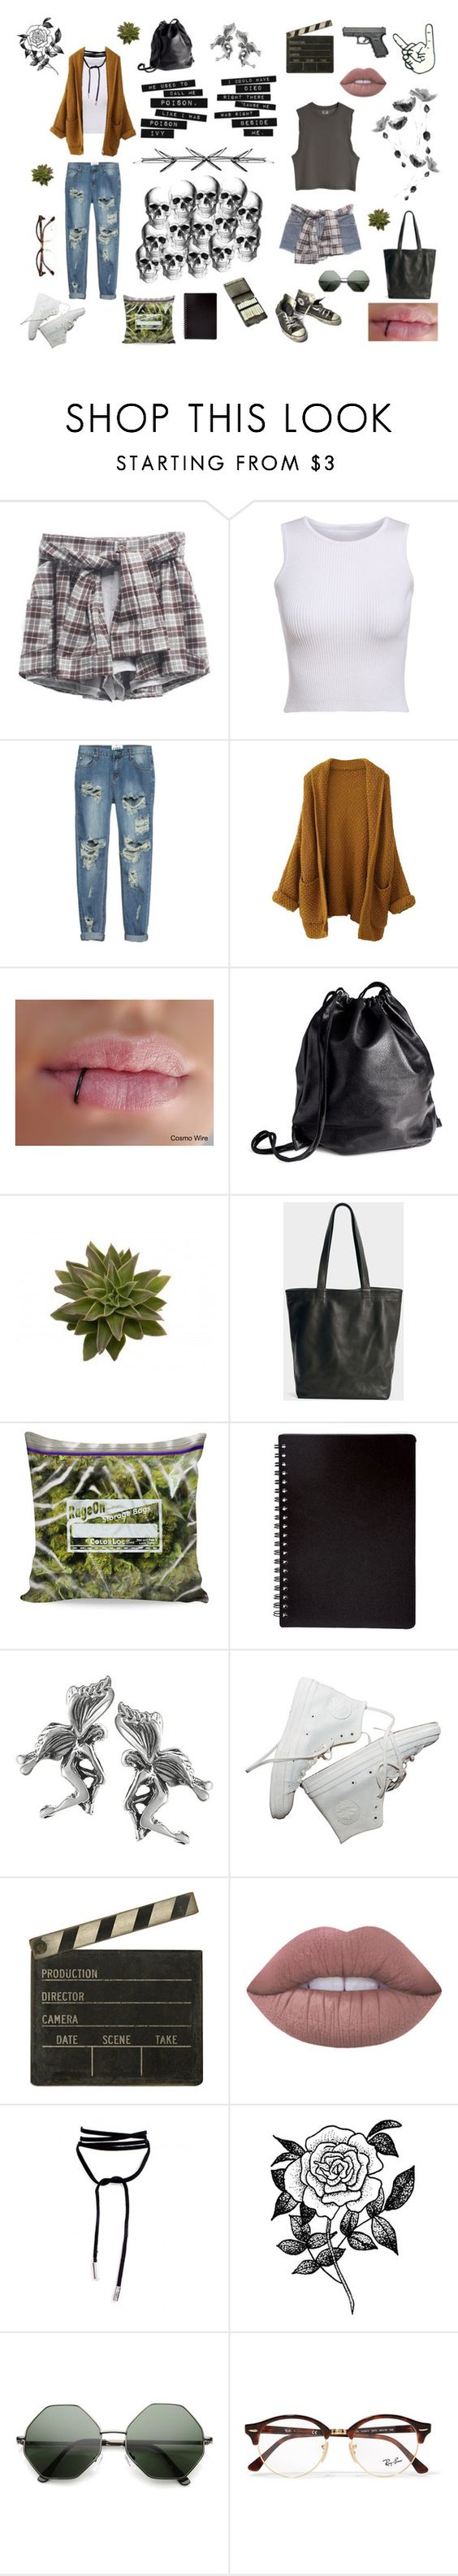 """""""grunge friends"""" by karatigelman ❤ liked on Polyvore featuring Levi's, One Teaspoon, Converse, H&M, Tressa, Spicher and Company, Lime Crime, Forever 21 and Ray-Ban"""